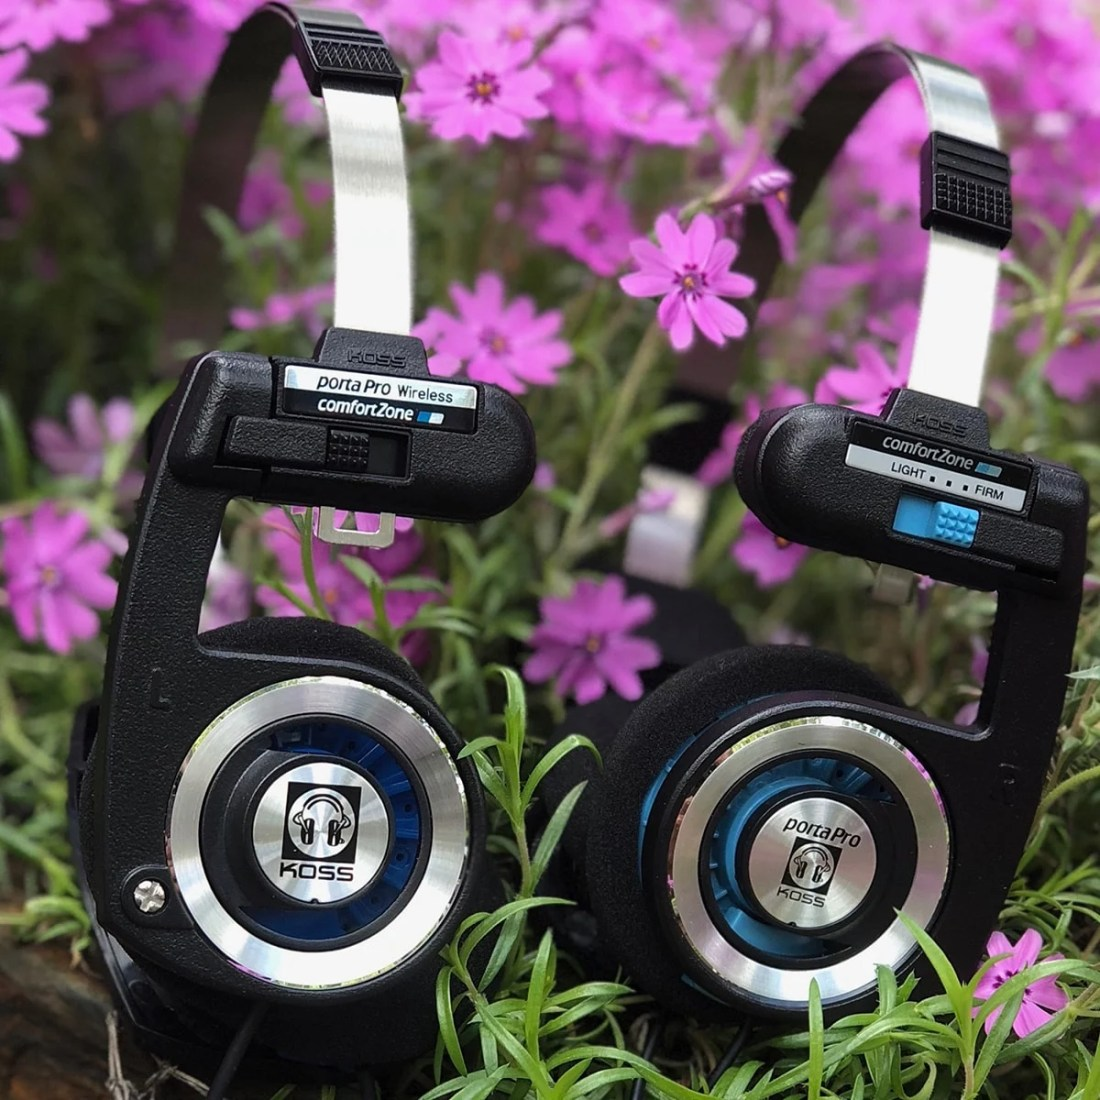 Review: Koss Porta Pro Wireless - If it ain't broke, don't fix it.